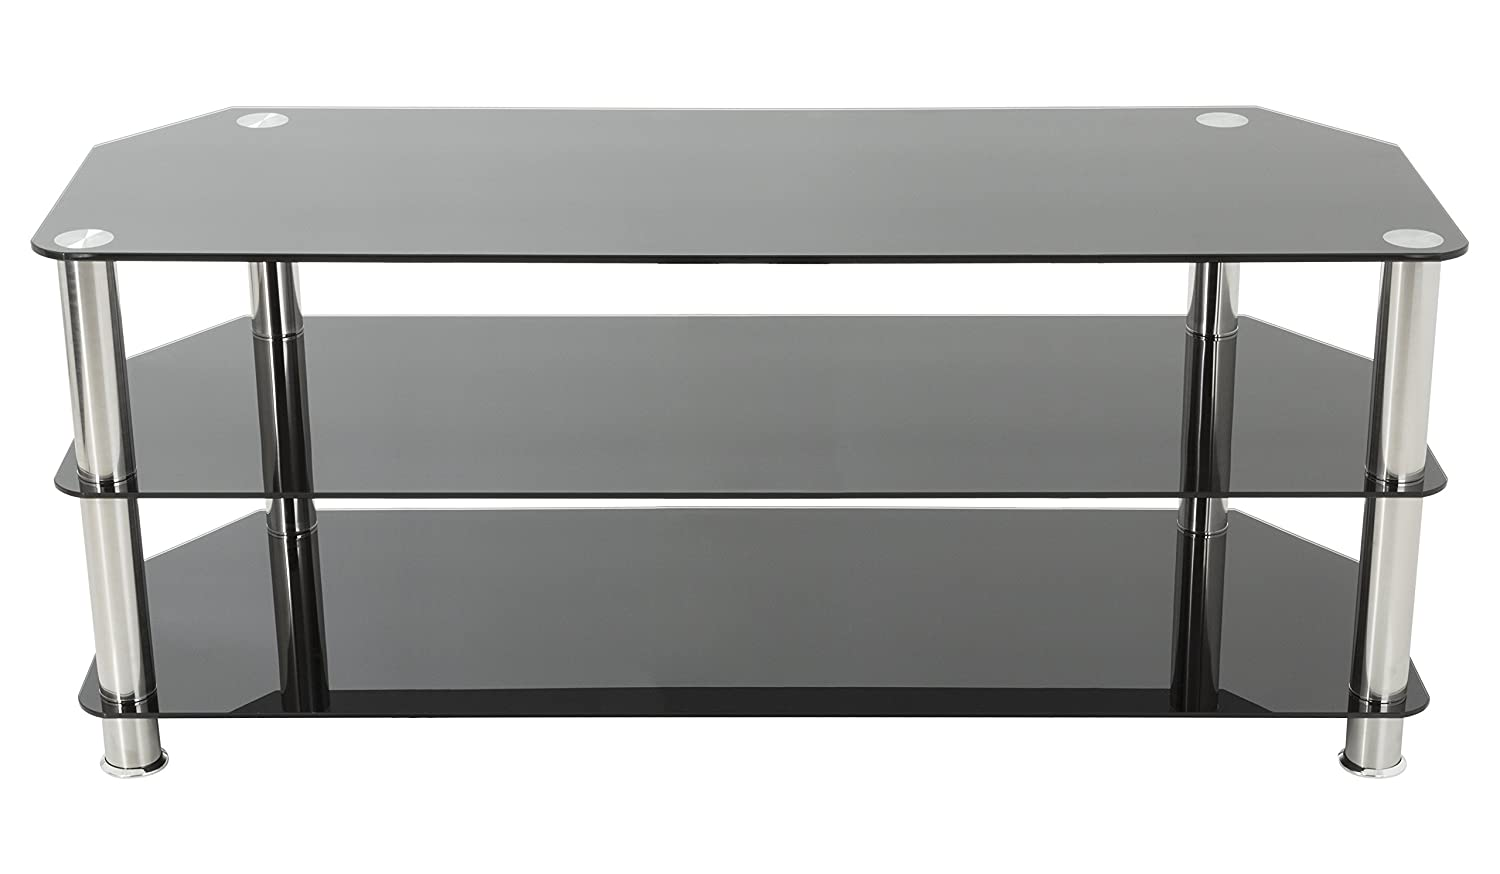 Amazoncom Avf Sdc1250 A Tv Stand For Up To 60 Inch Tvs Black